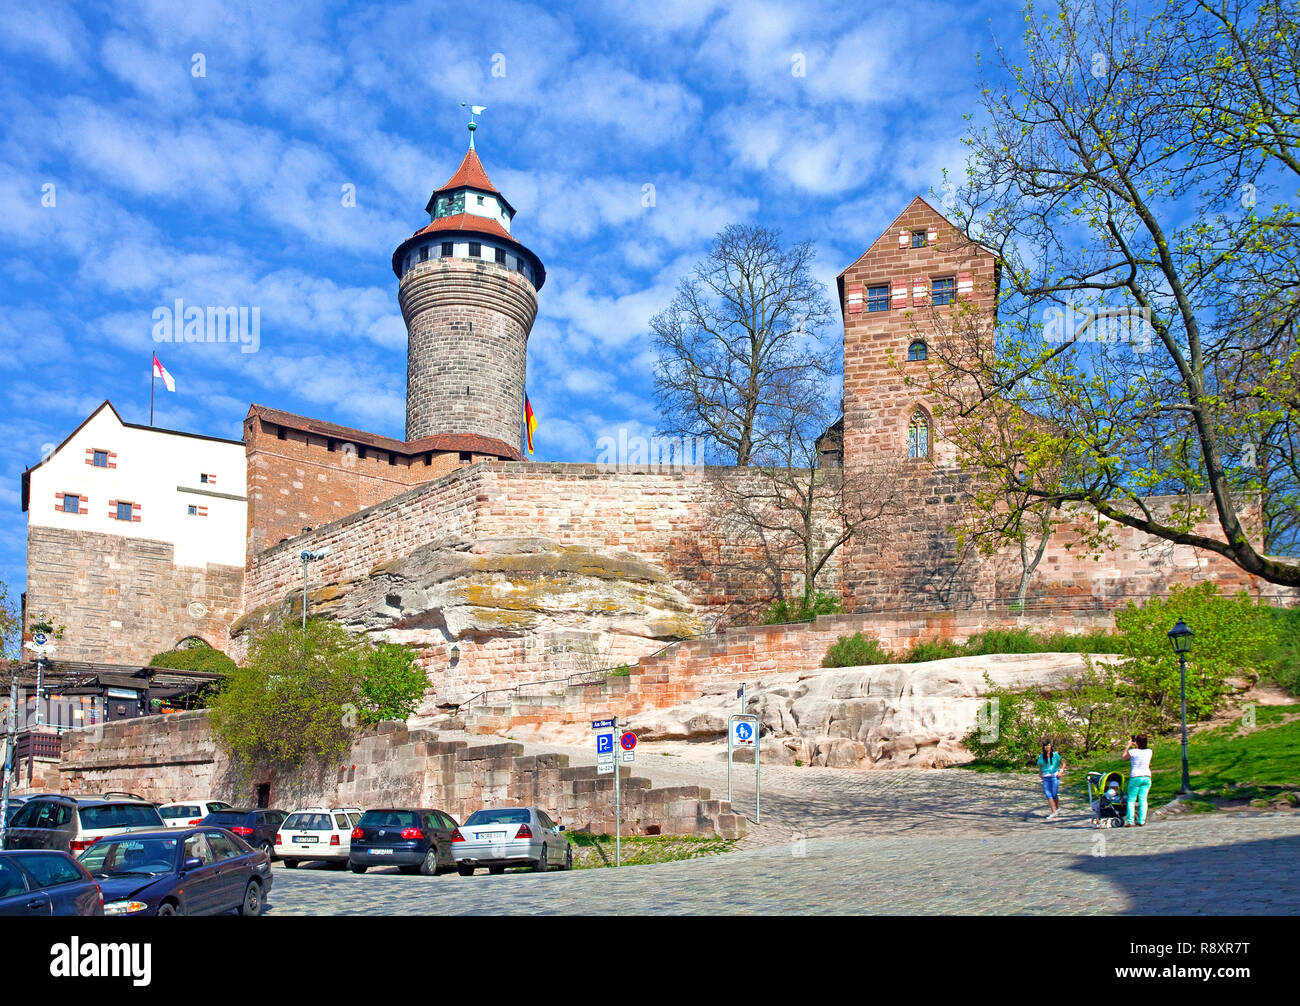 Imperial Castle, old town, Nuremberg, Franconia, Bavaria, Germany, Europe Stock Photo